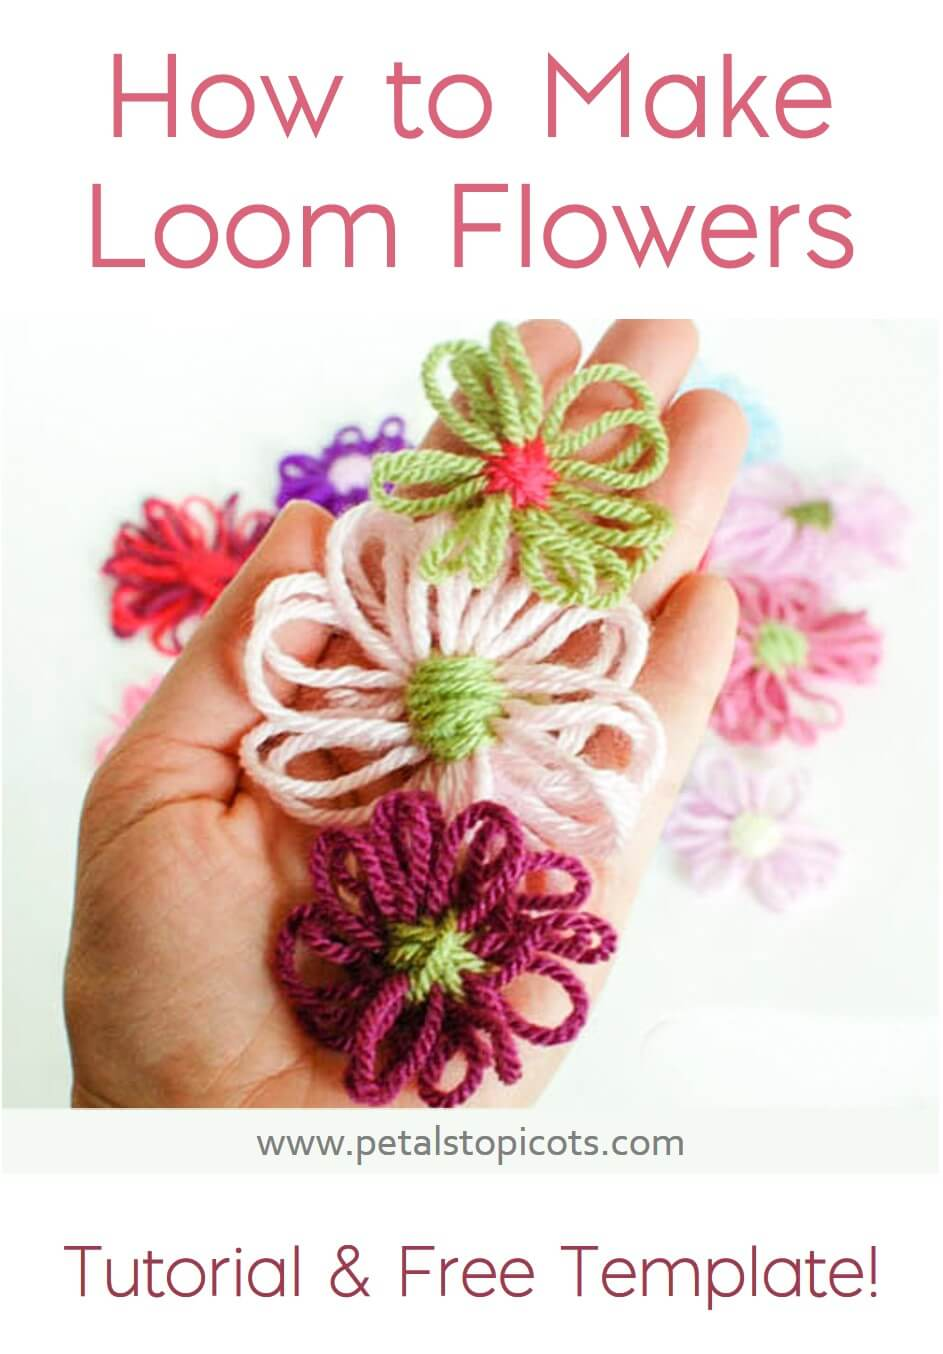 These pretty loom flowers are so quick and simple to whip up ... Download the free loom template and follow this \